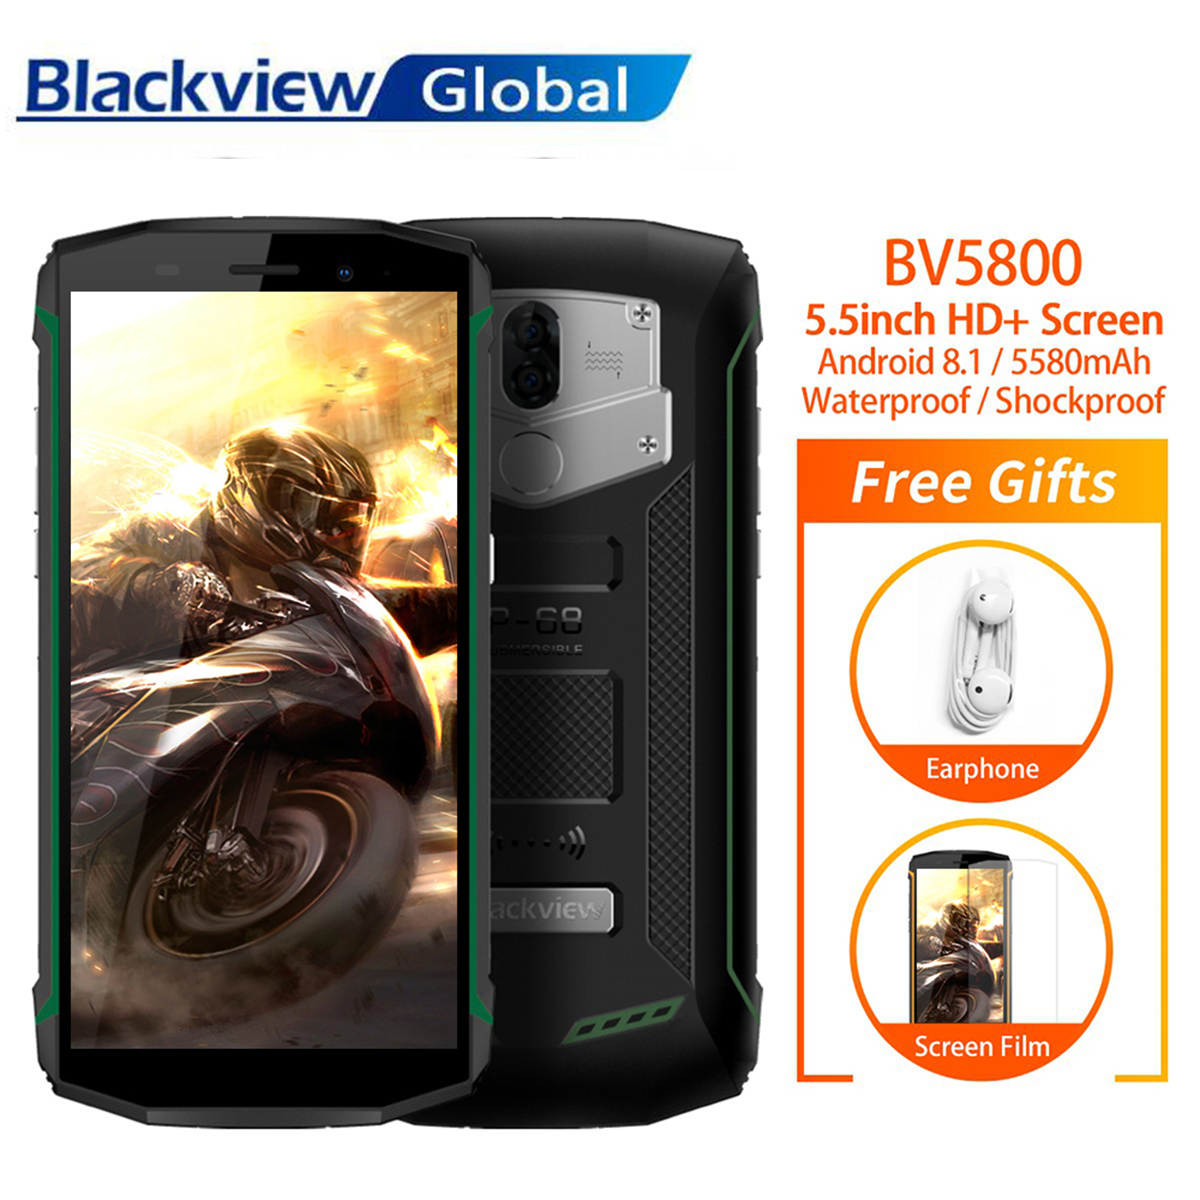 promo code d94e9 4cce5 Details about Brandnew Blackview BV5800 5.5